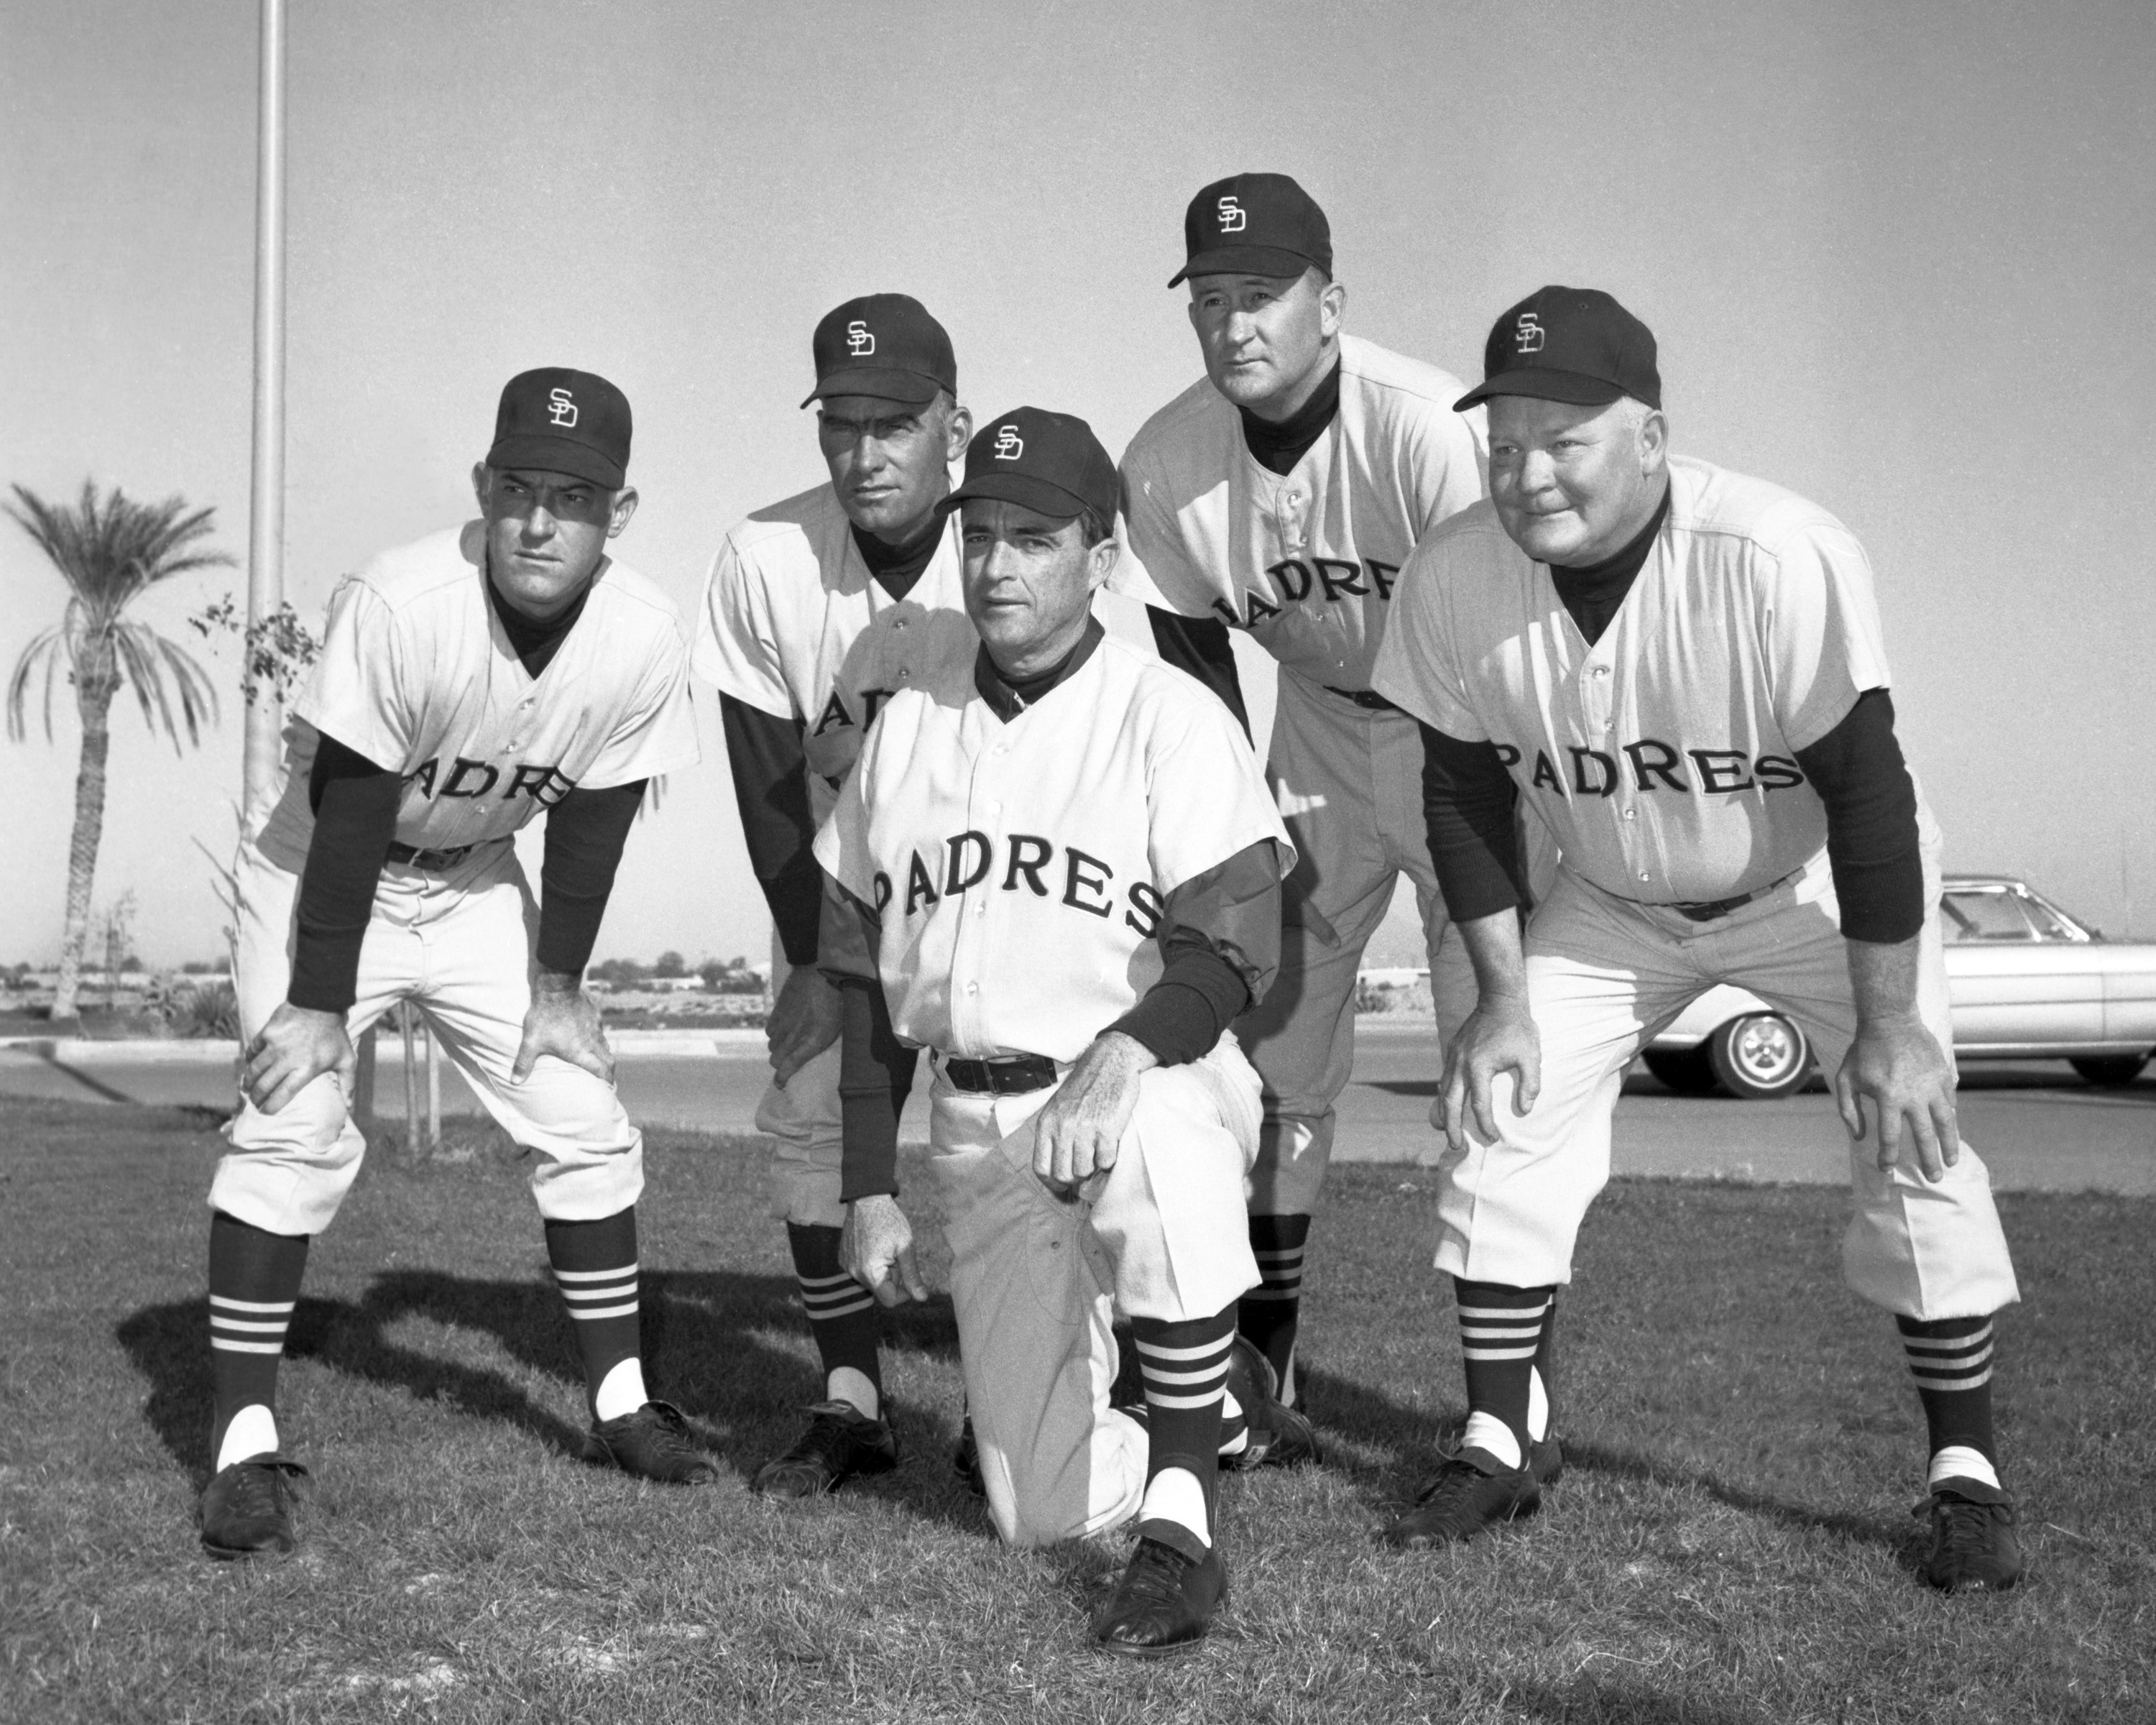 1969 Padres coaching staff